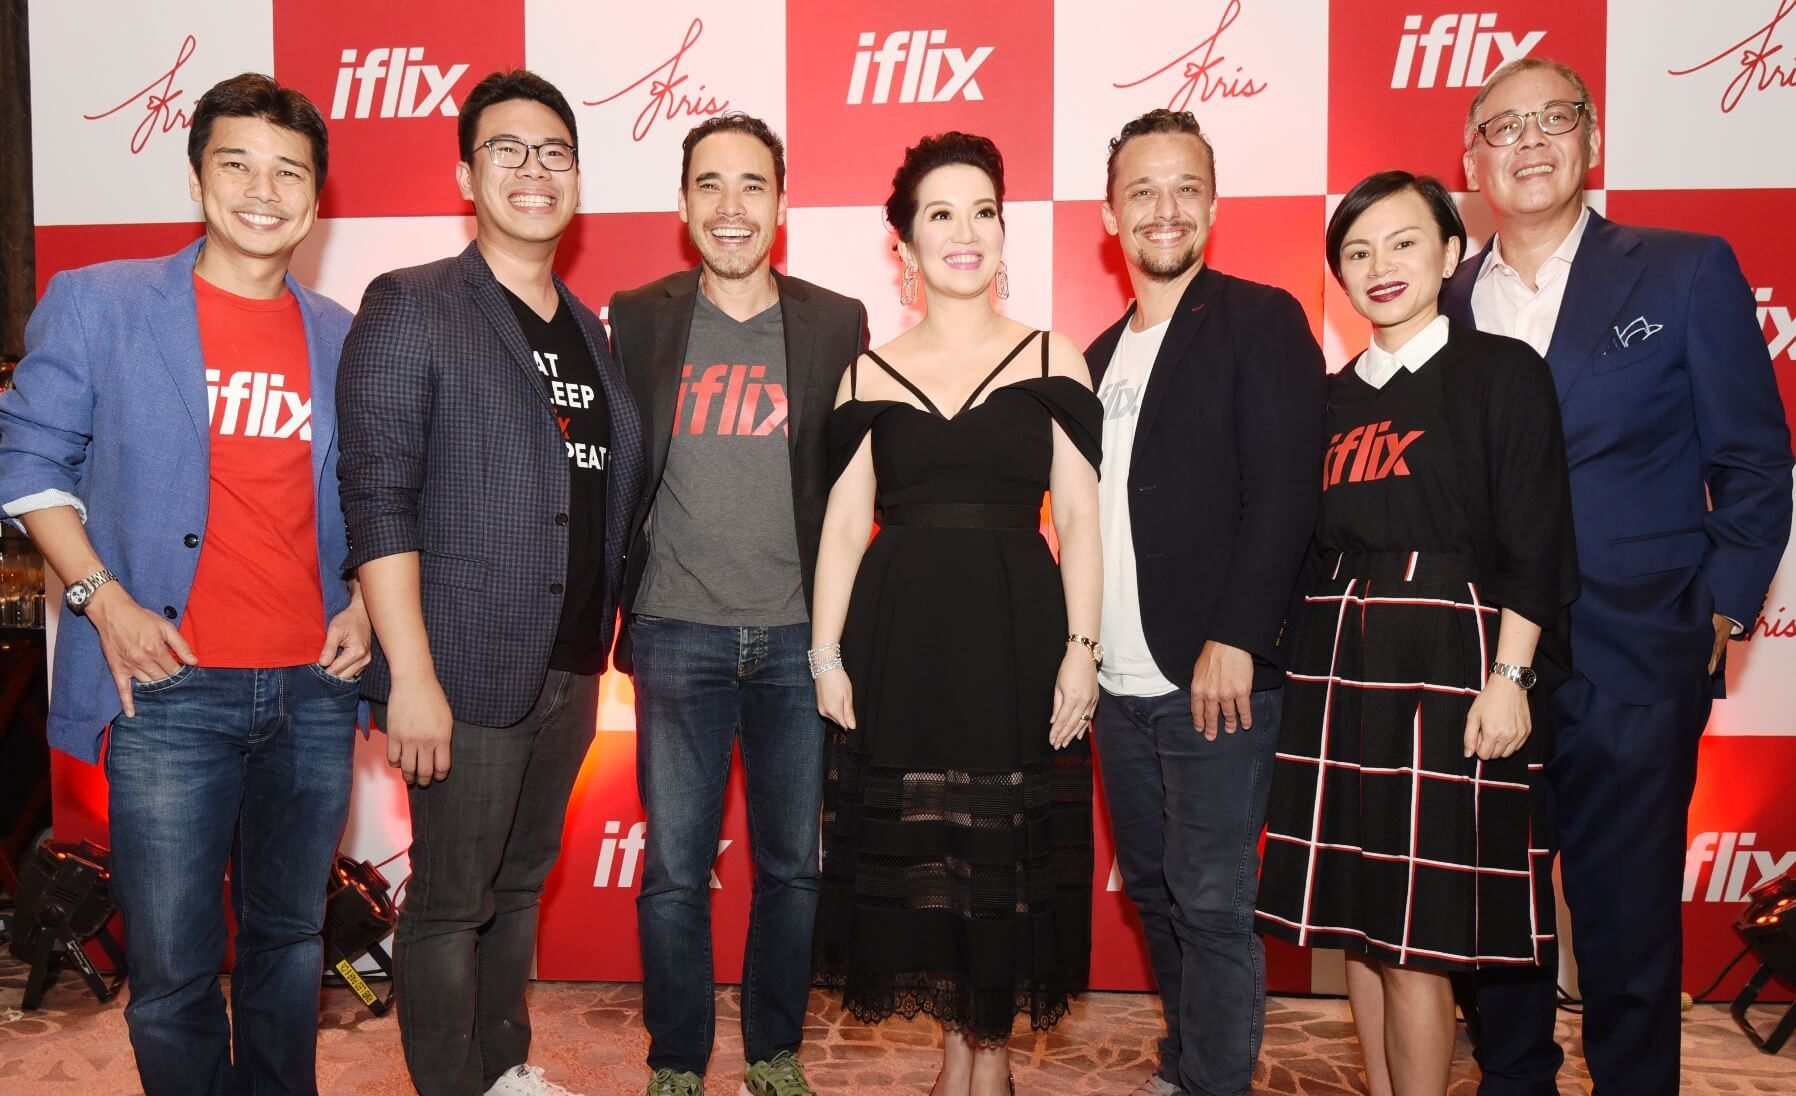 PLDT Home Subscribers Can Now Enjoy Unlimited Access to Iflix